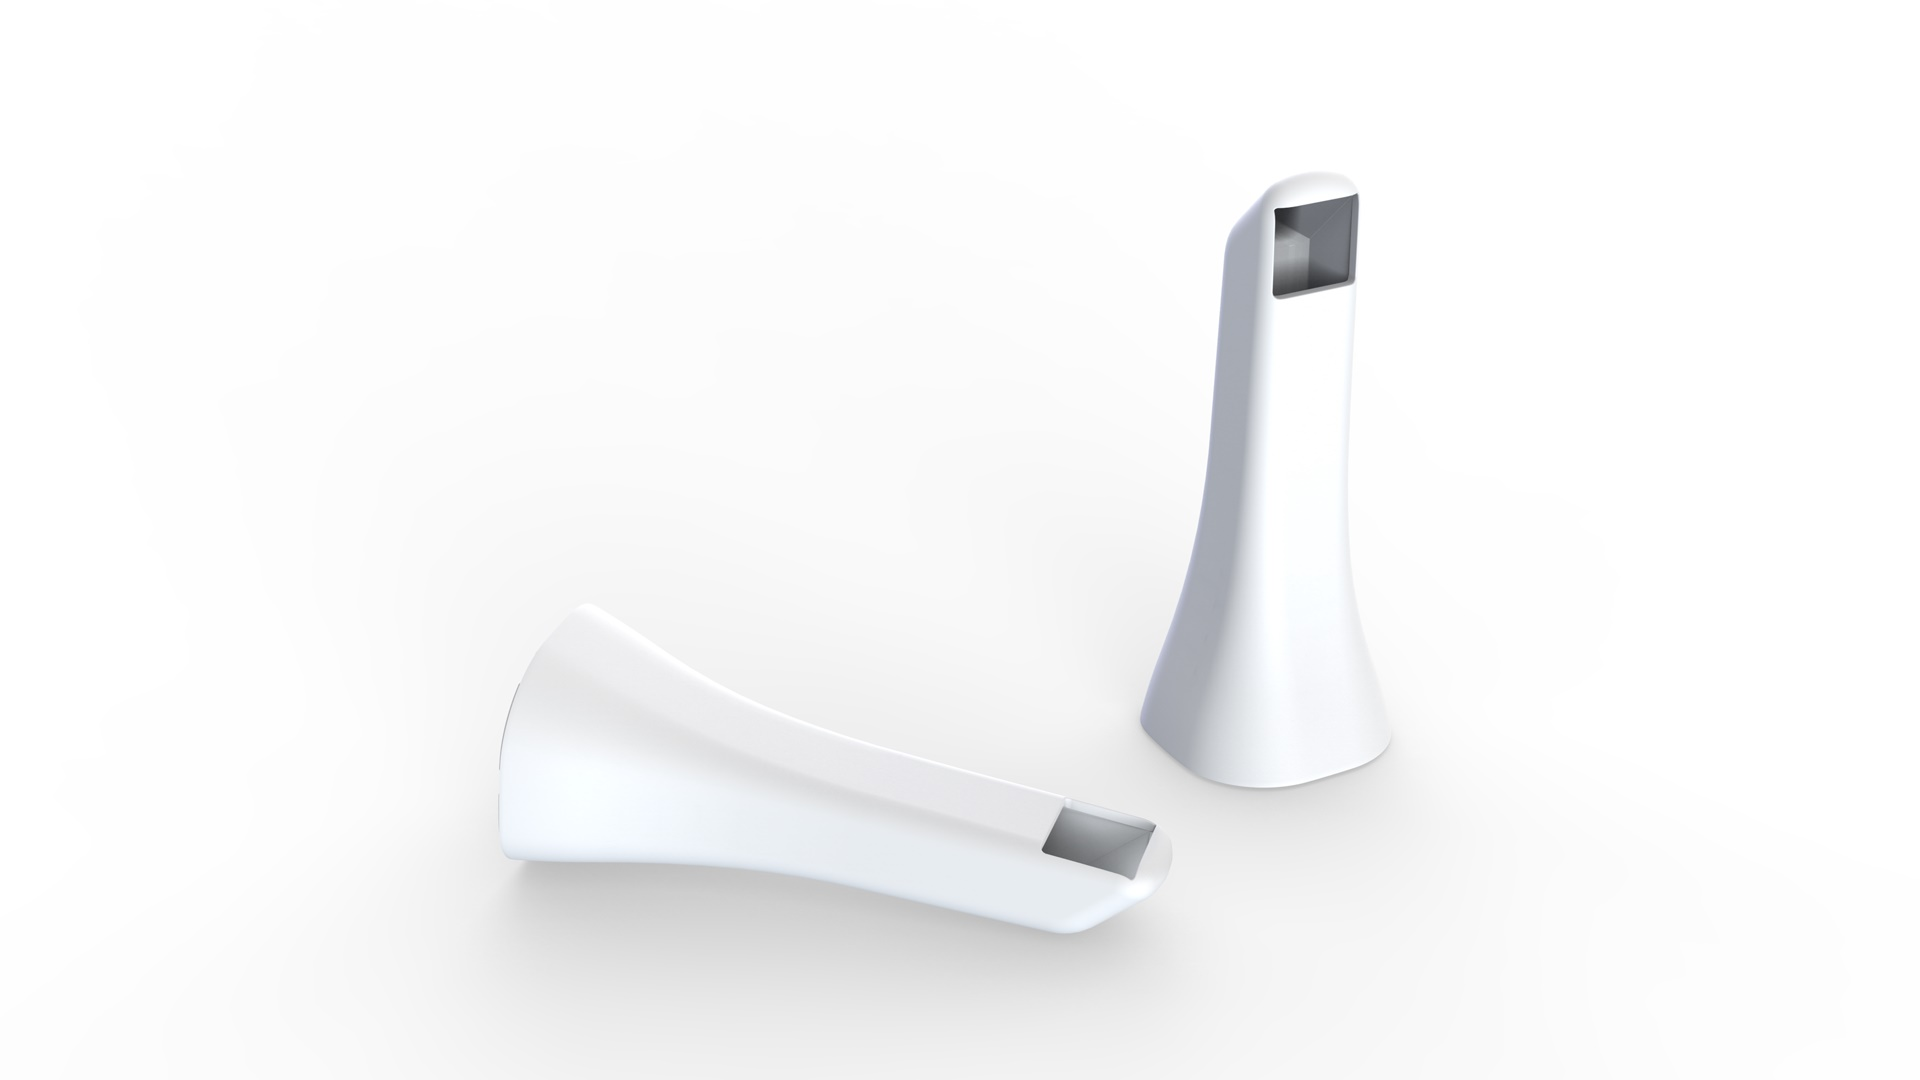 Which is Better for Intraoral Scanners - Single-use or Autoclavable Tips?